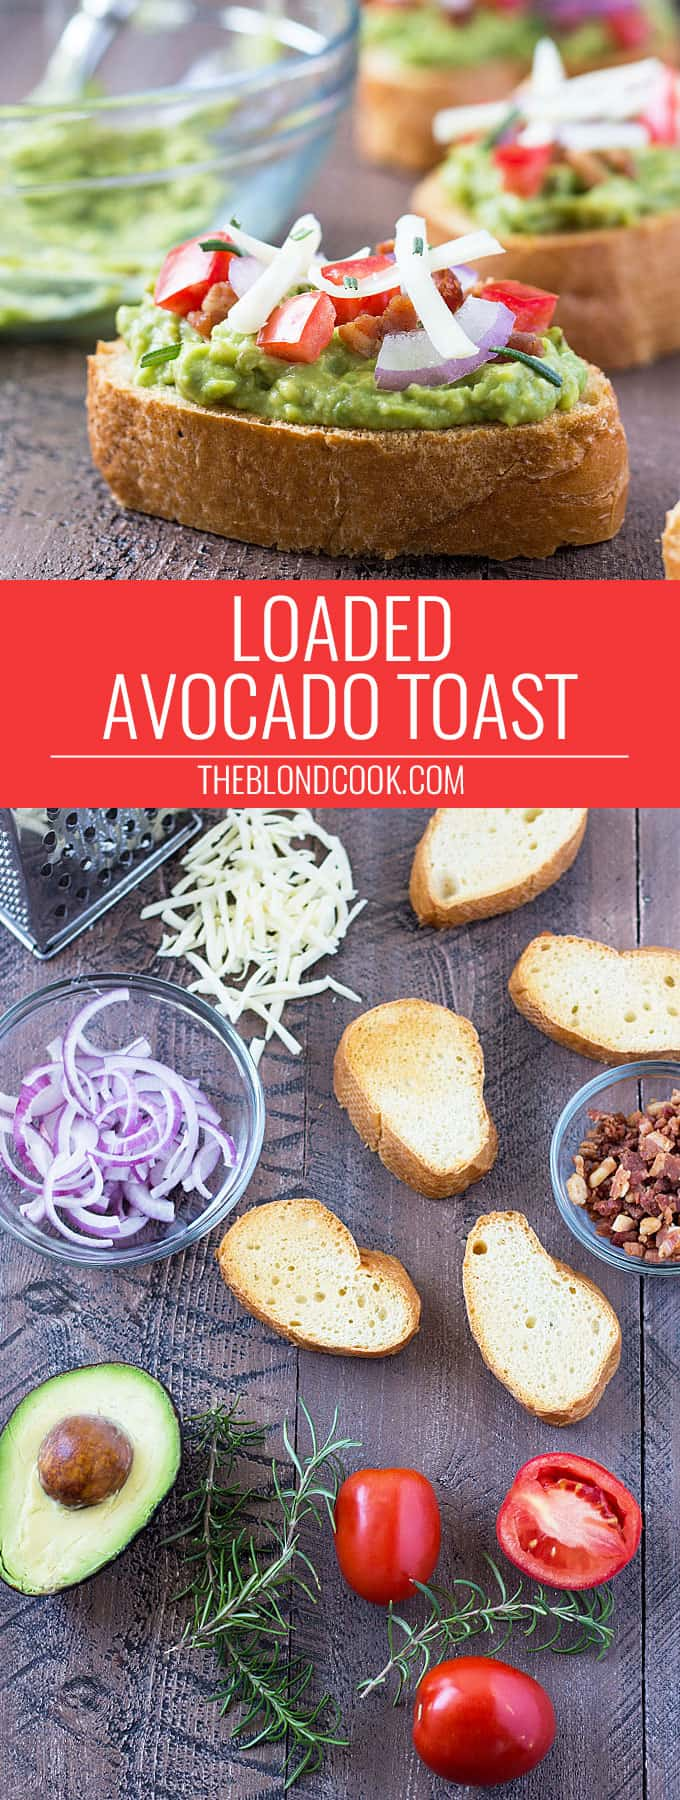 Loaded Avocado Toast with bacon, mozzarella, tomato, red onions and rosemary. A quick and easy meal or snack!